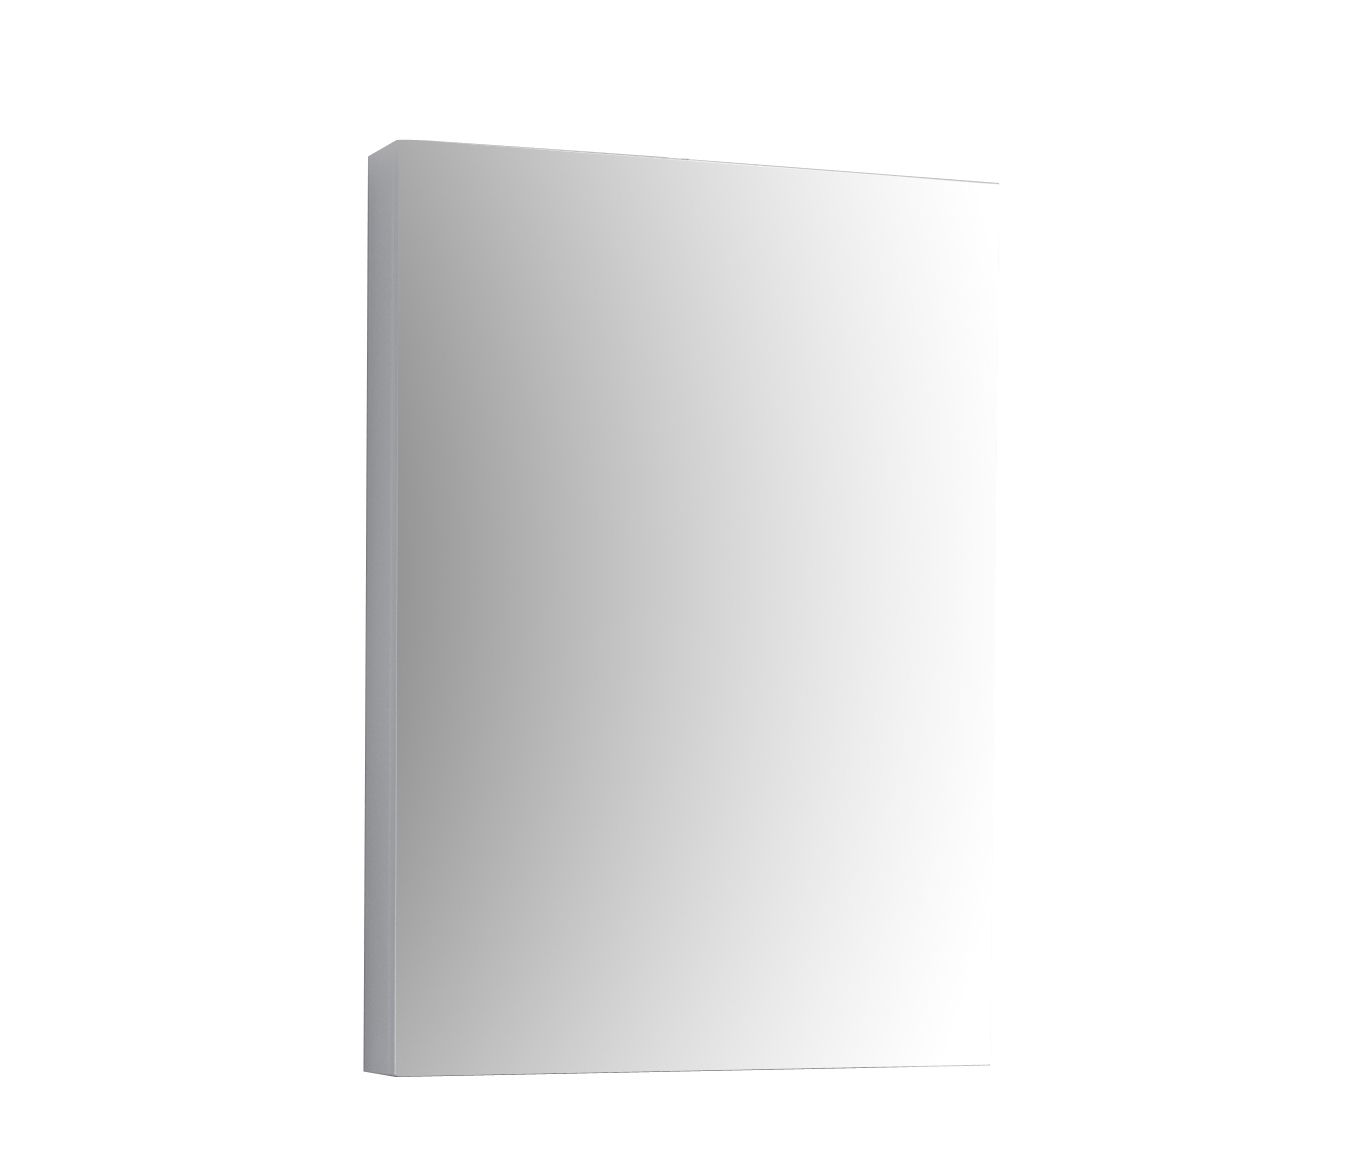 Mirror Cabinet without light, 460mm - White